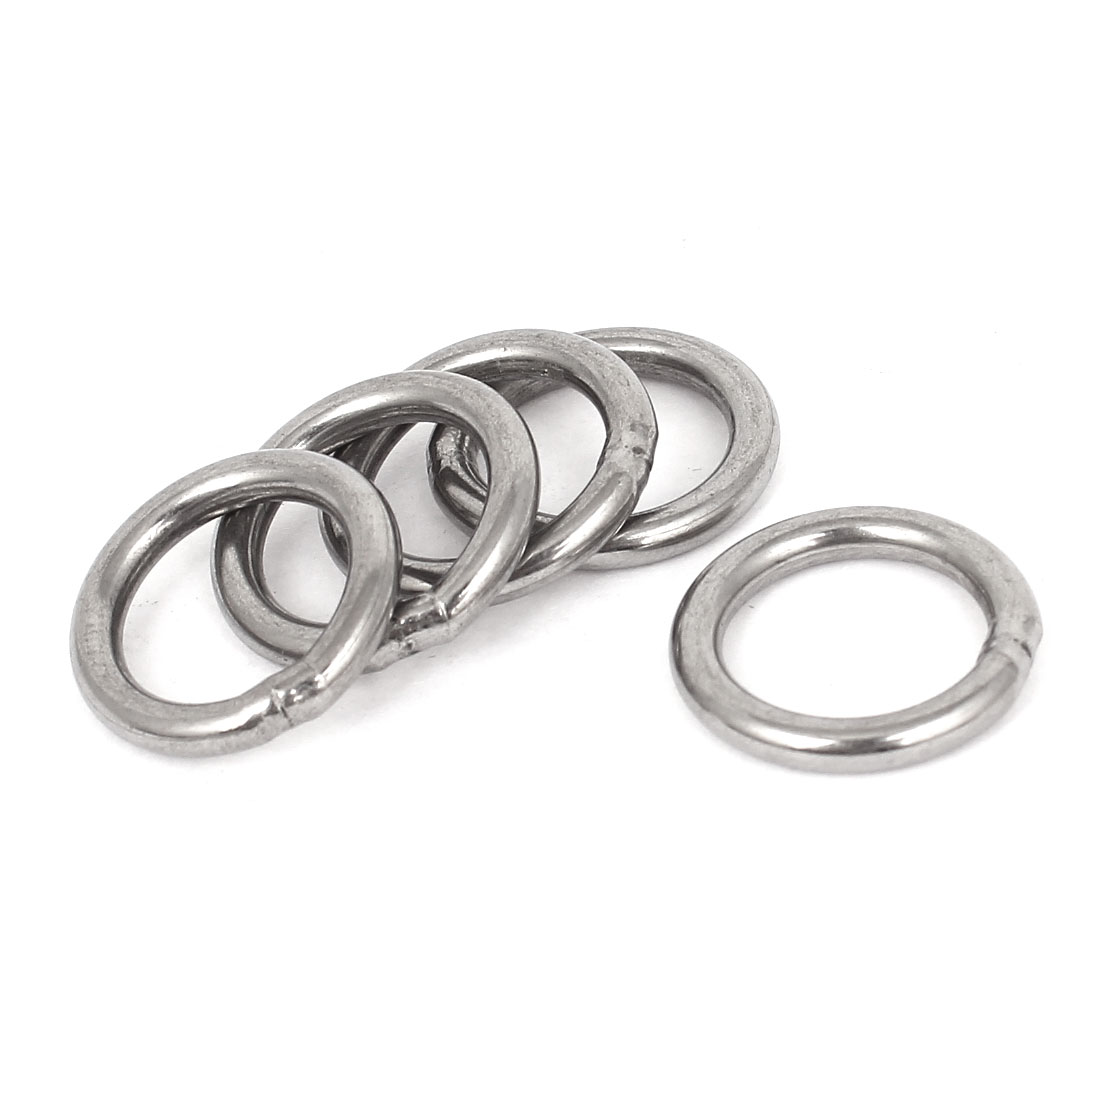 20mm x 3mm Stainless Steel Webbing Strapping Welded O Rings 5 Pcs